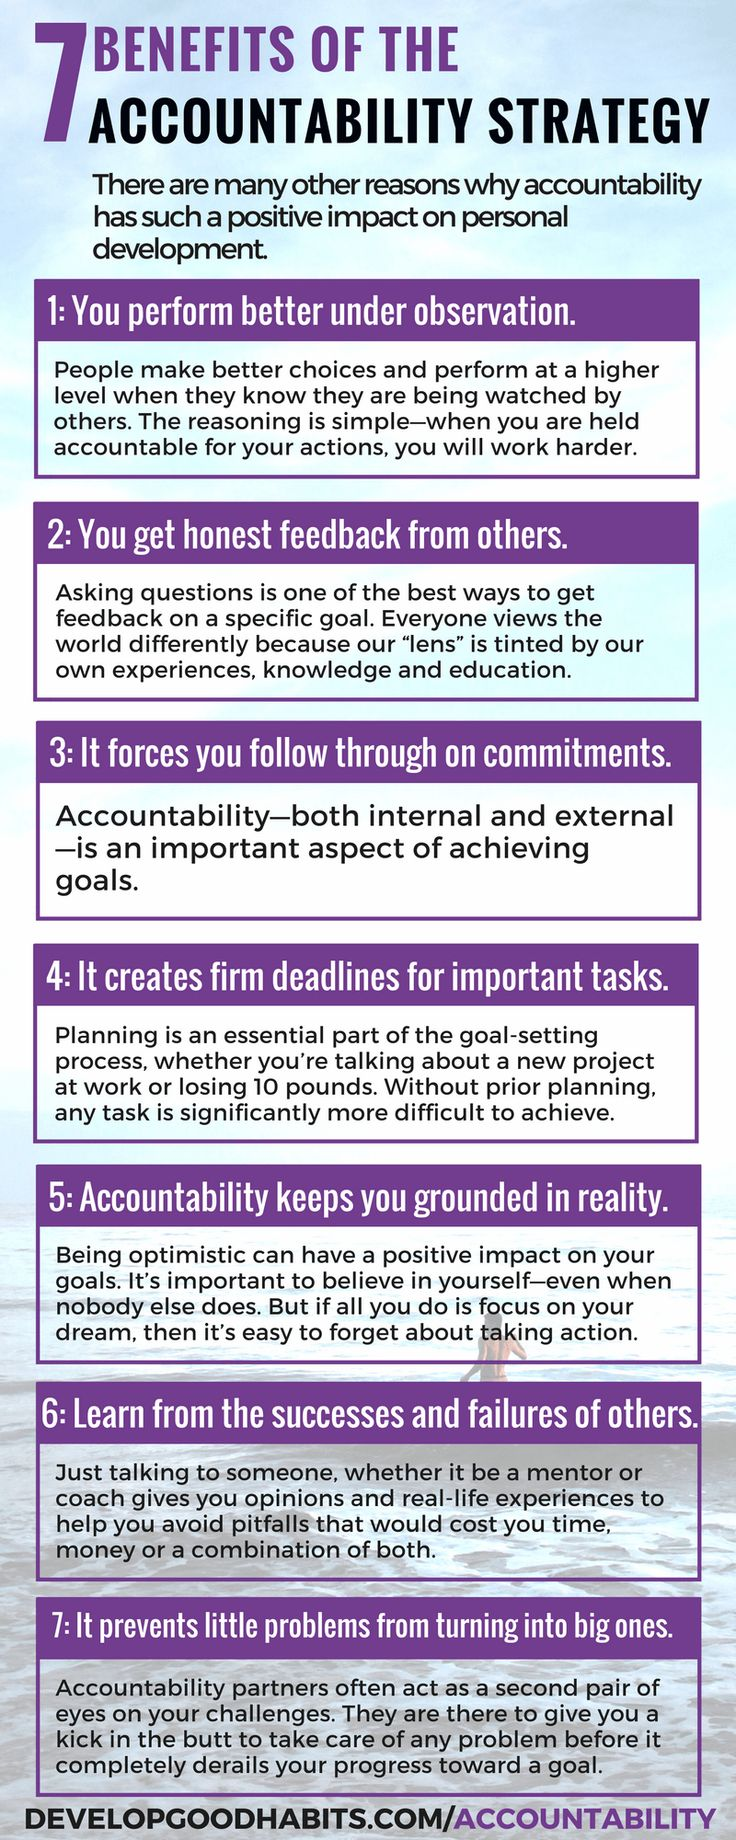 Benefits of increased accountability. How accountability will help you reach your goals.